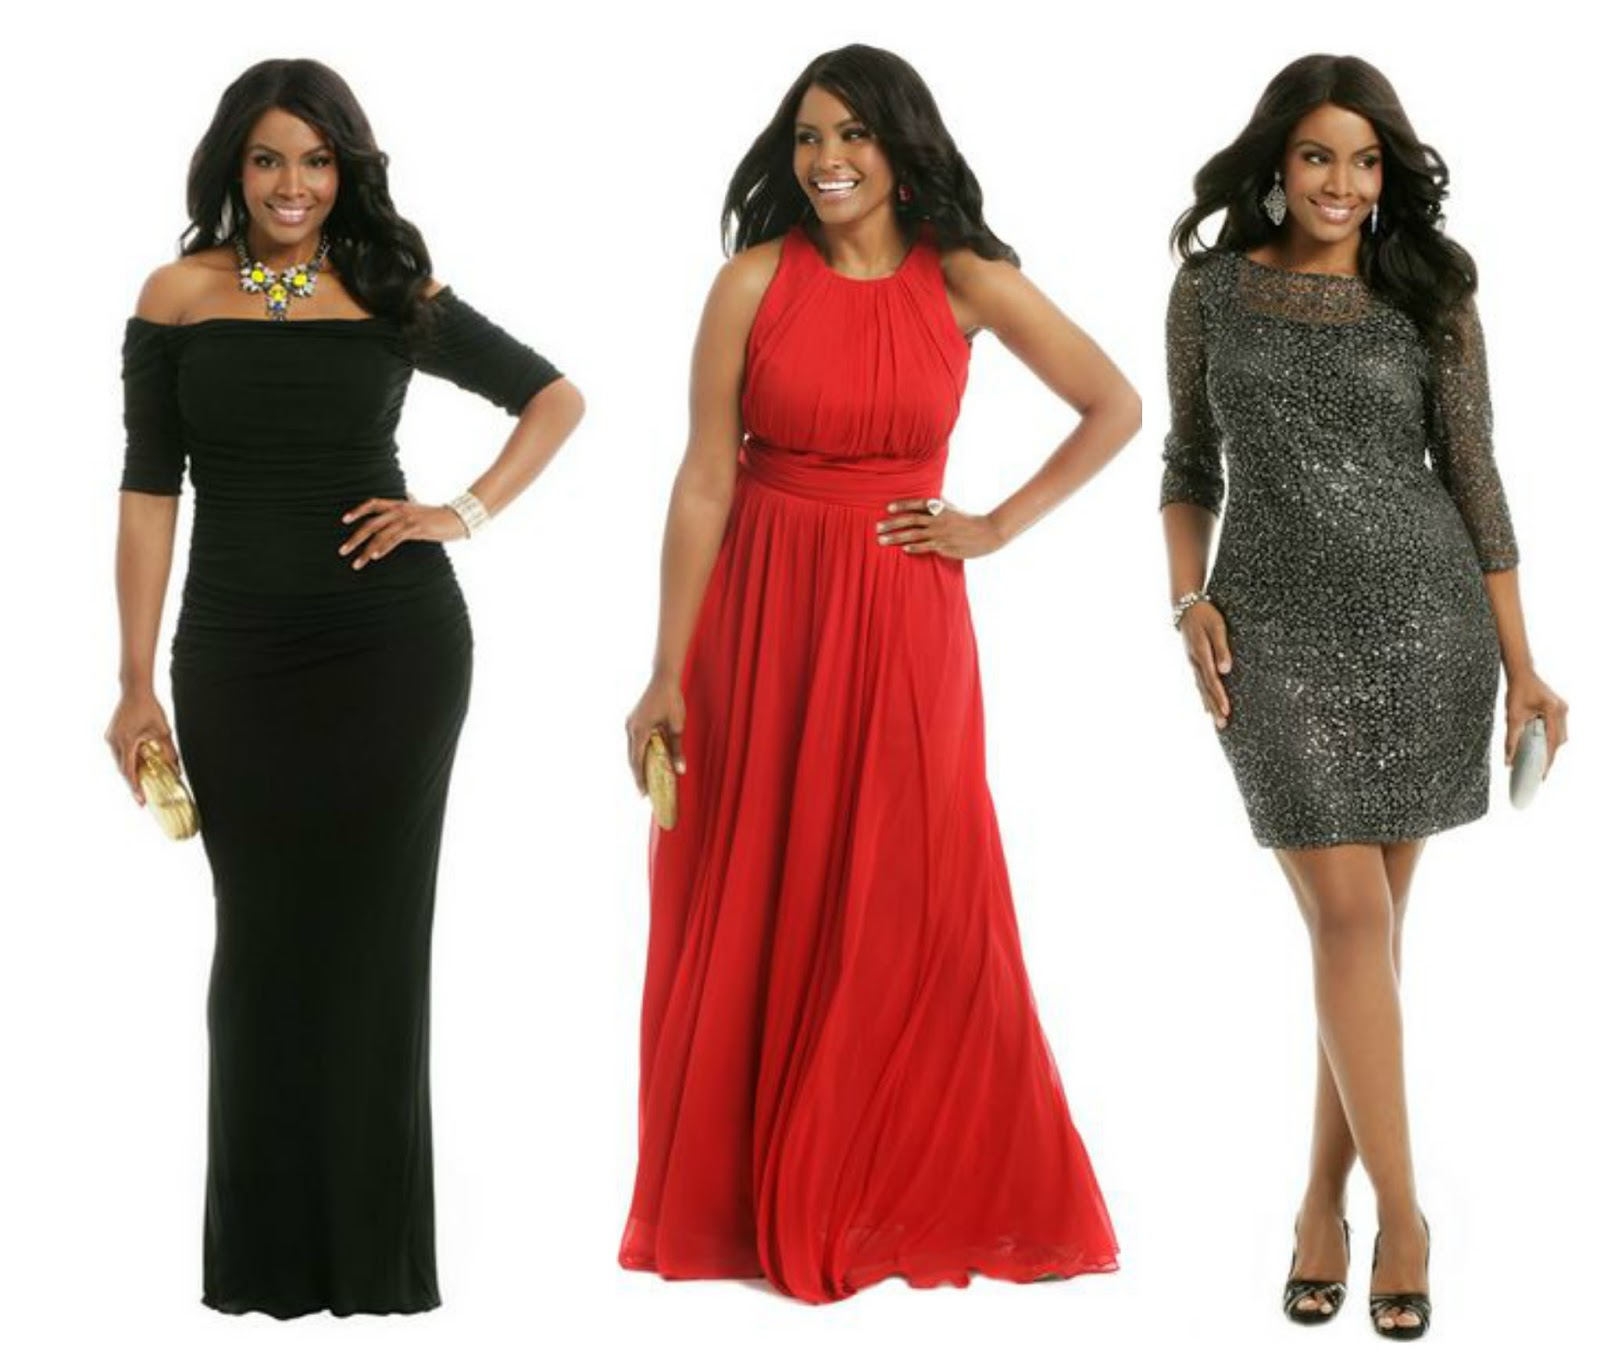 Shopping} Rent The Runway Finally Offers Plus Sizes • Curvatude